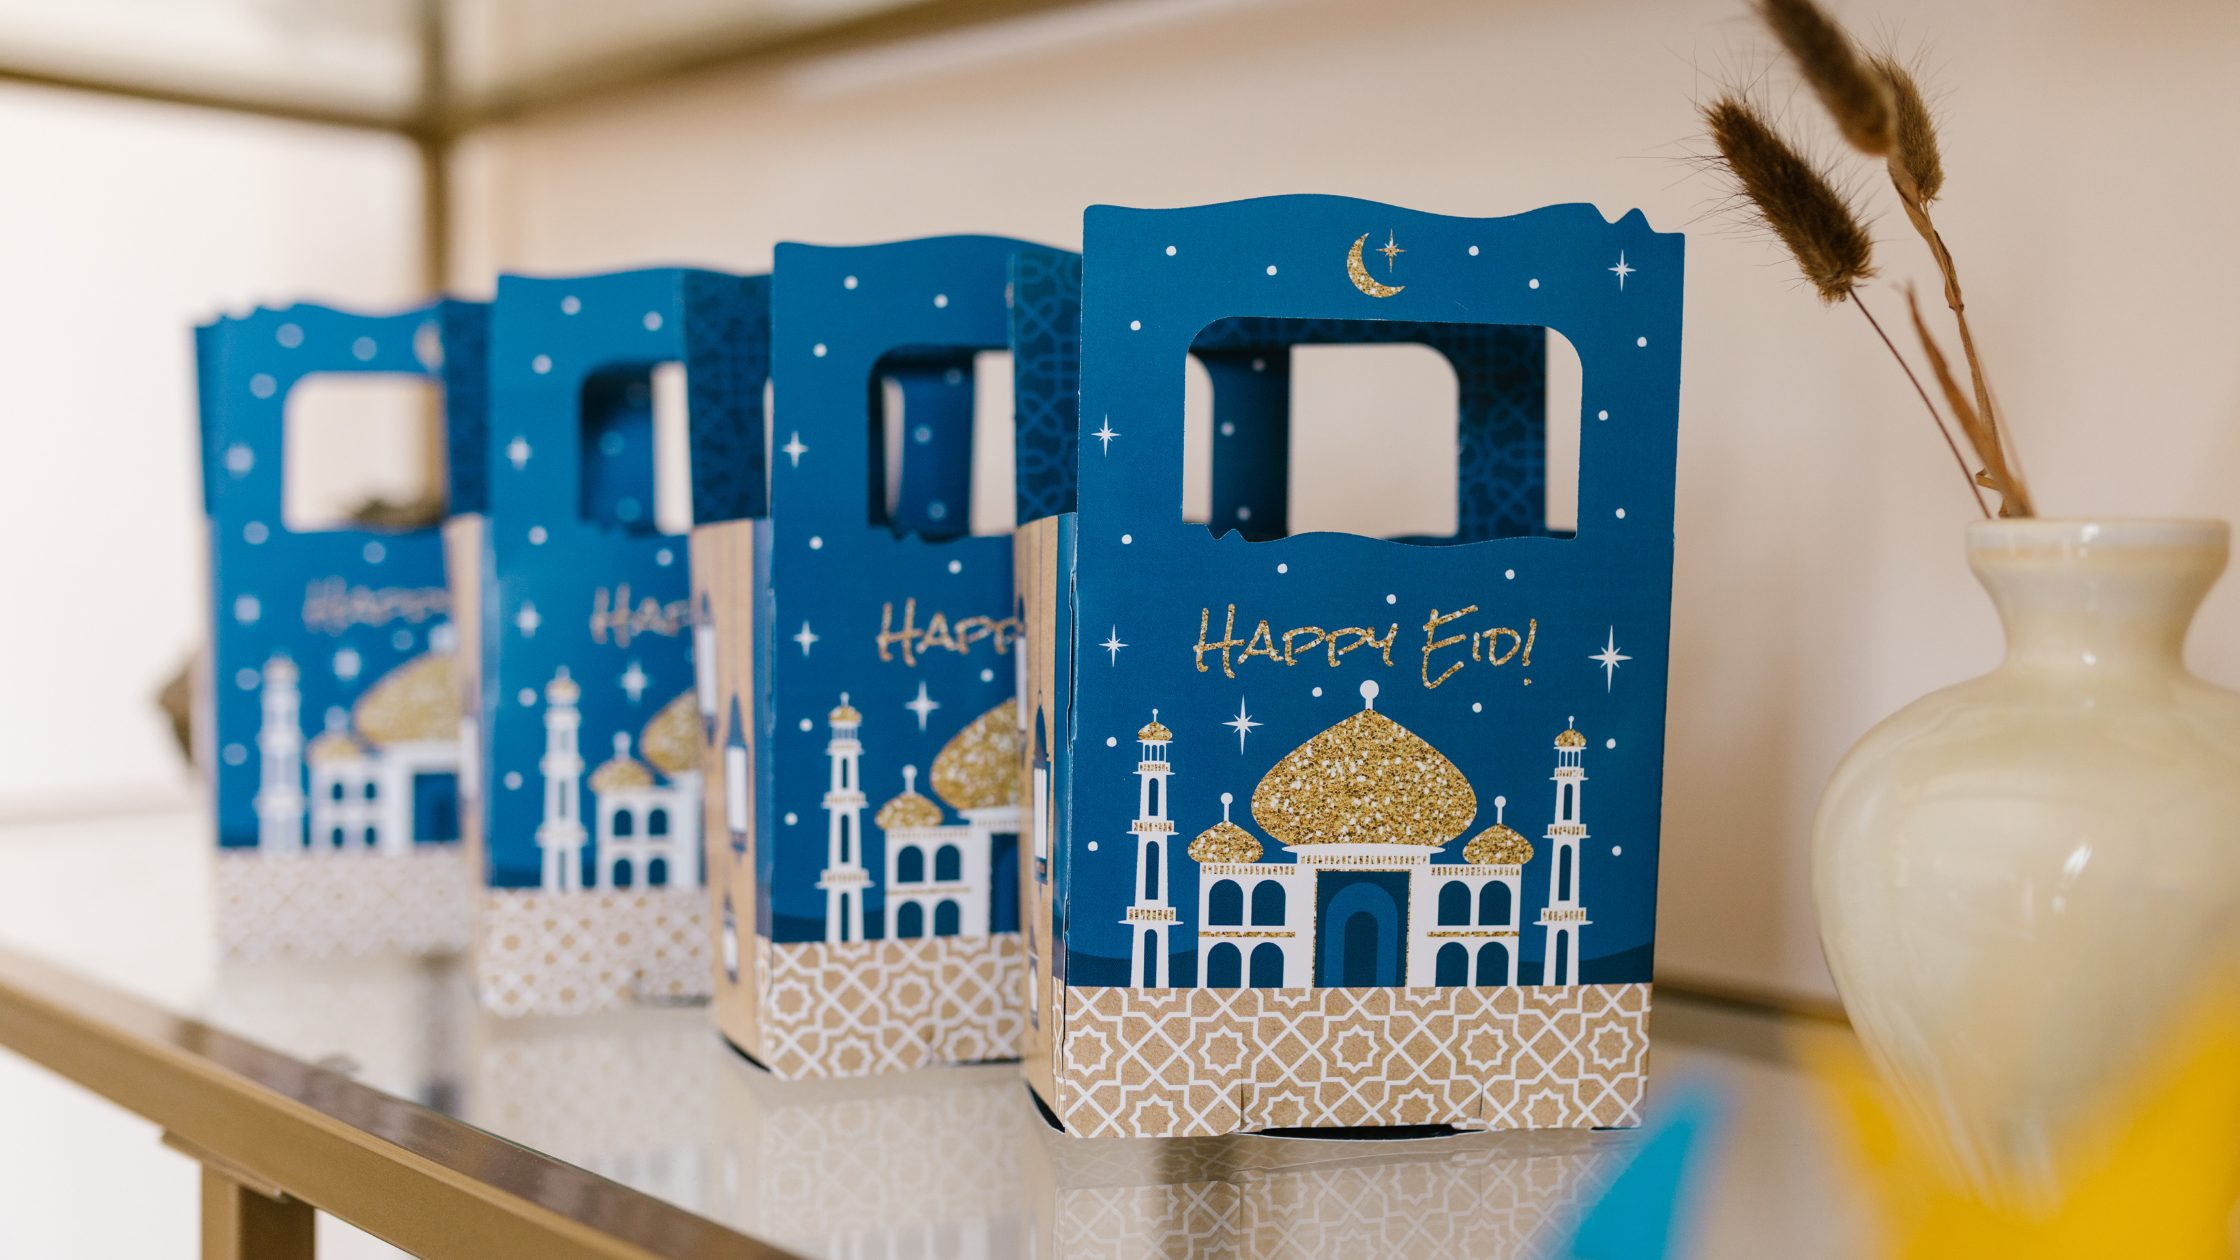 Eid gift ideas for adults, for the family, for friends – eid ul fitr 2021